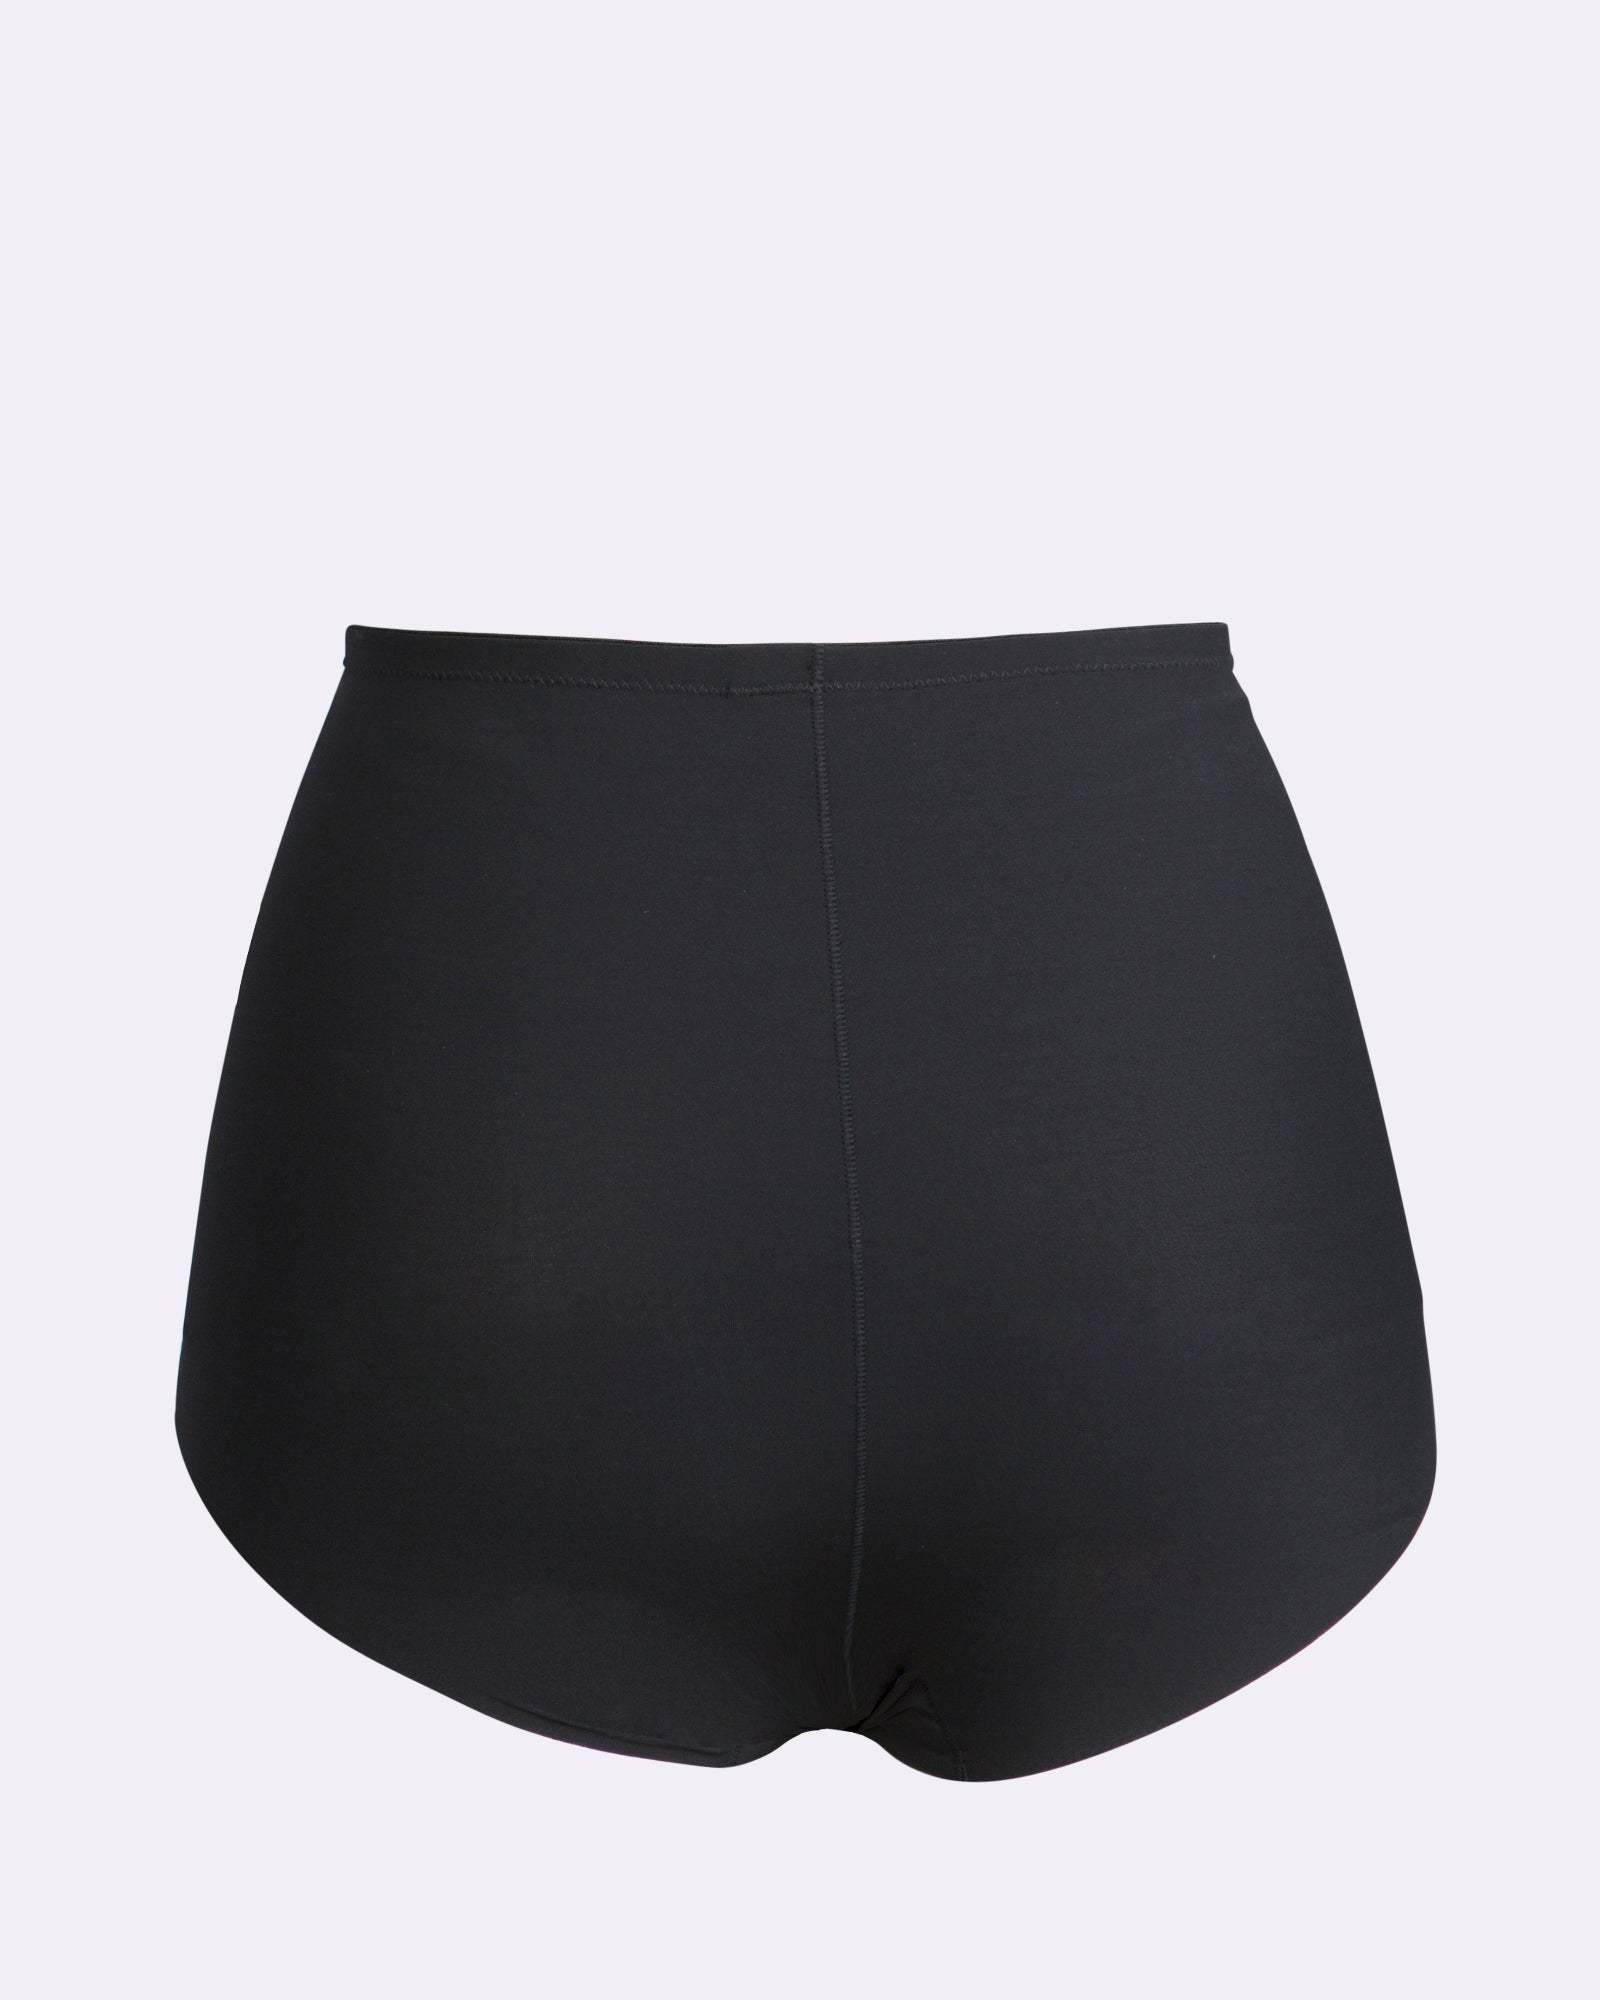 Harmony Medium Control Brief -Black